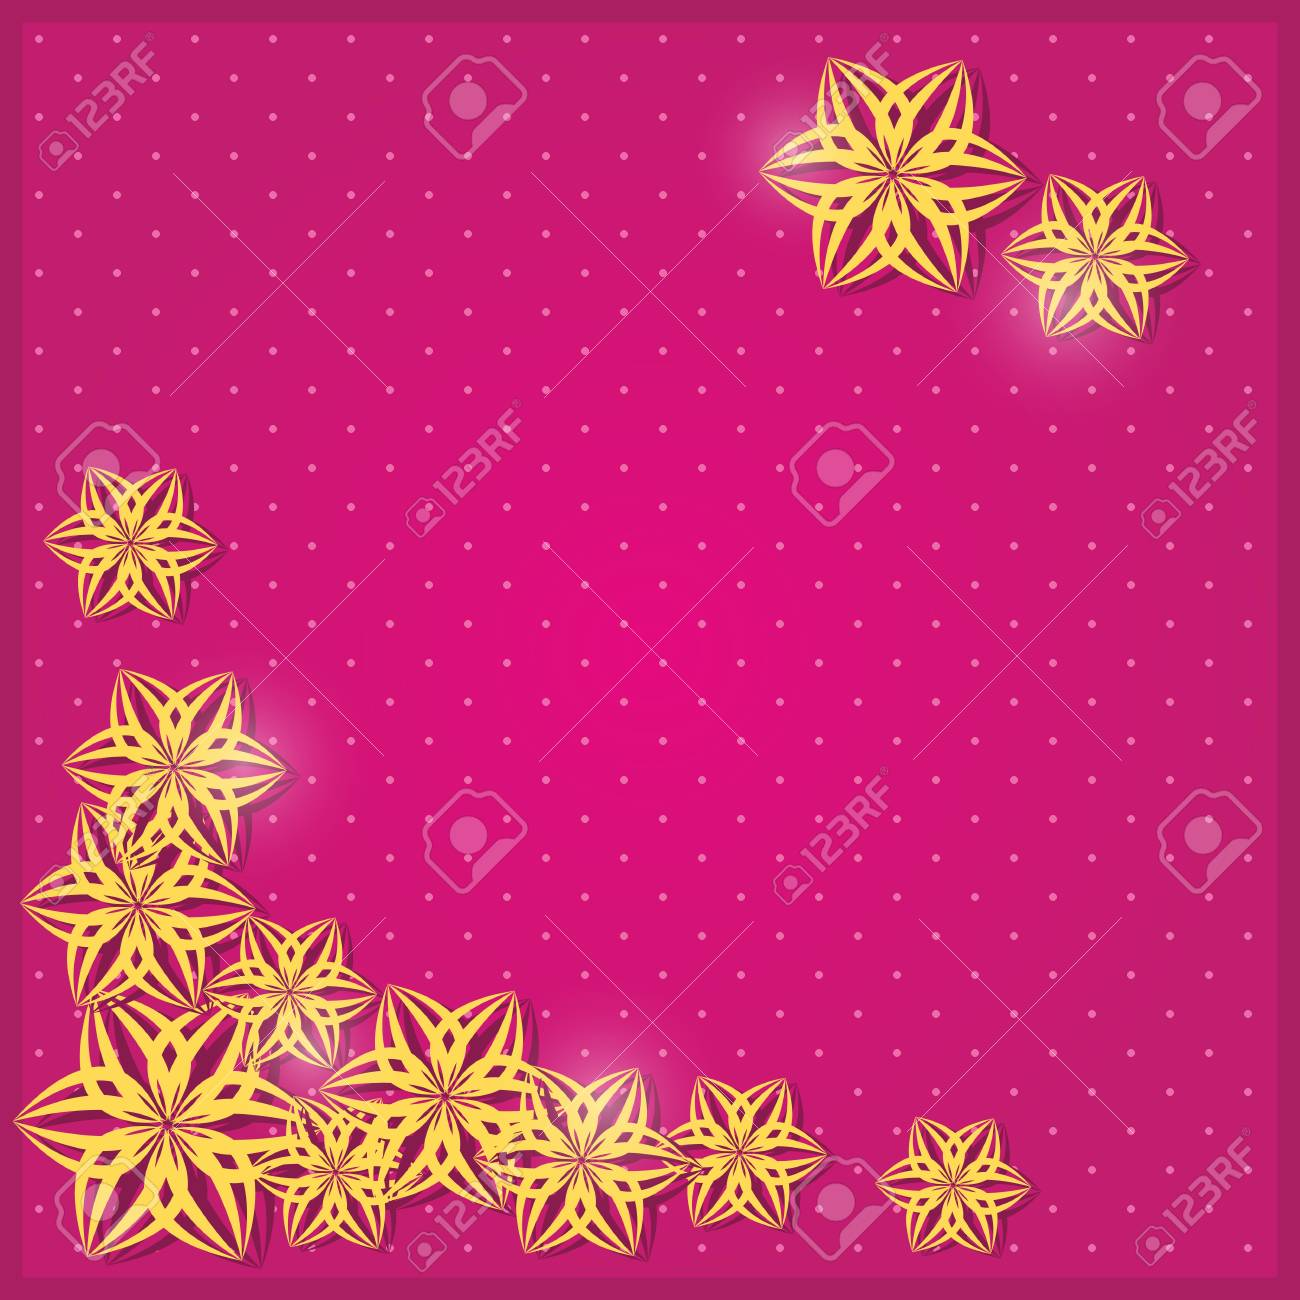 Pink Greeting Invitation Card with Yellow Paper Stick Flower Silhouettes. Vector Illustration Stock Vector - 19396098